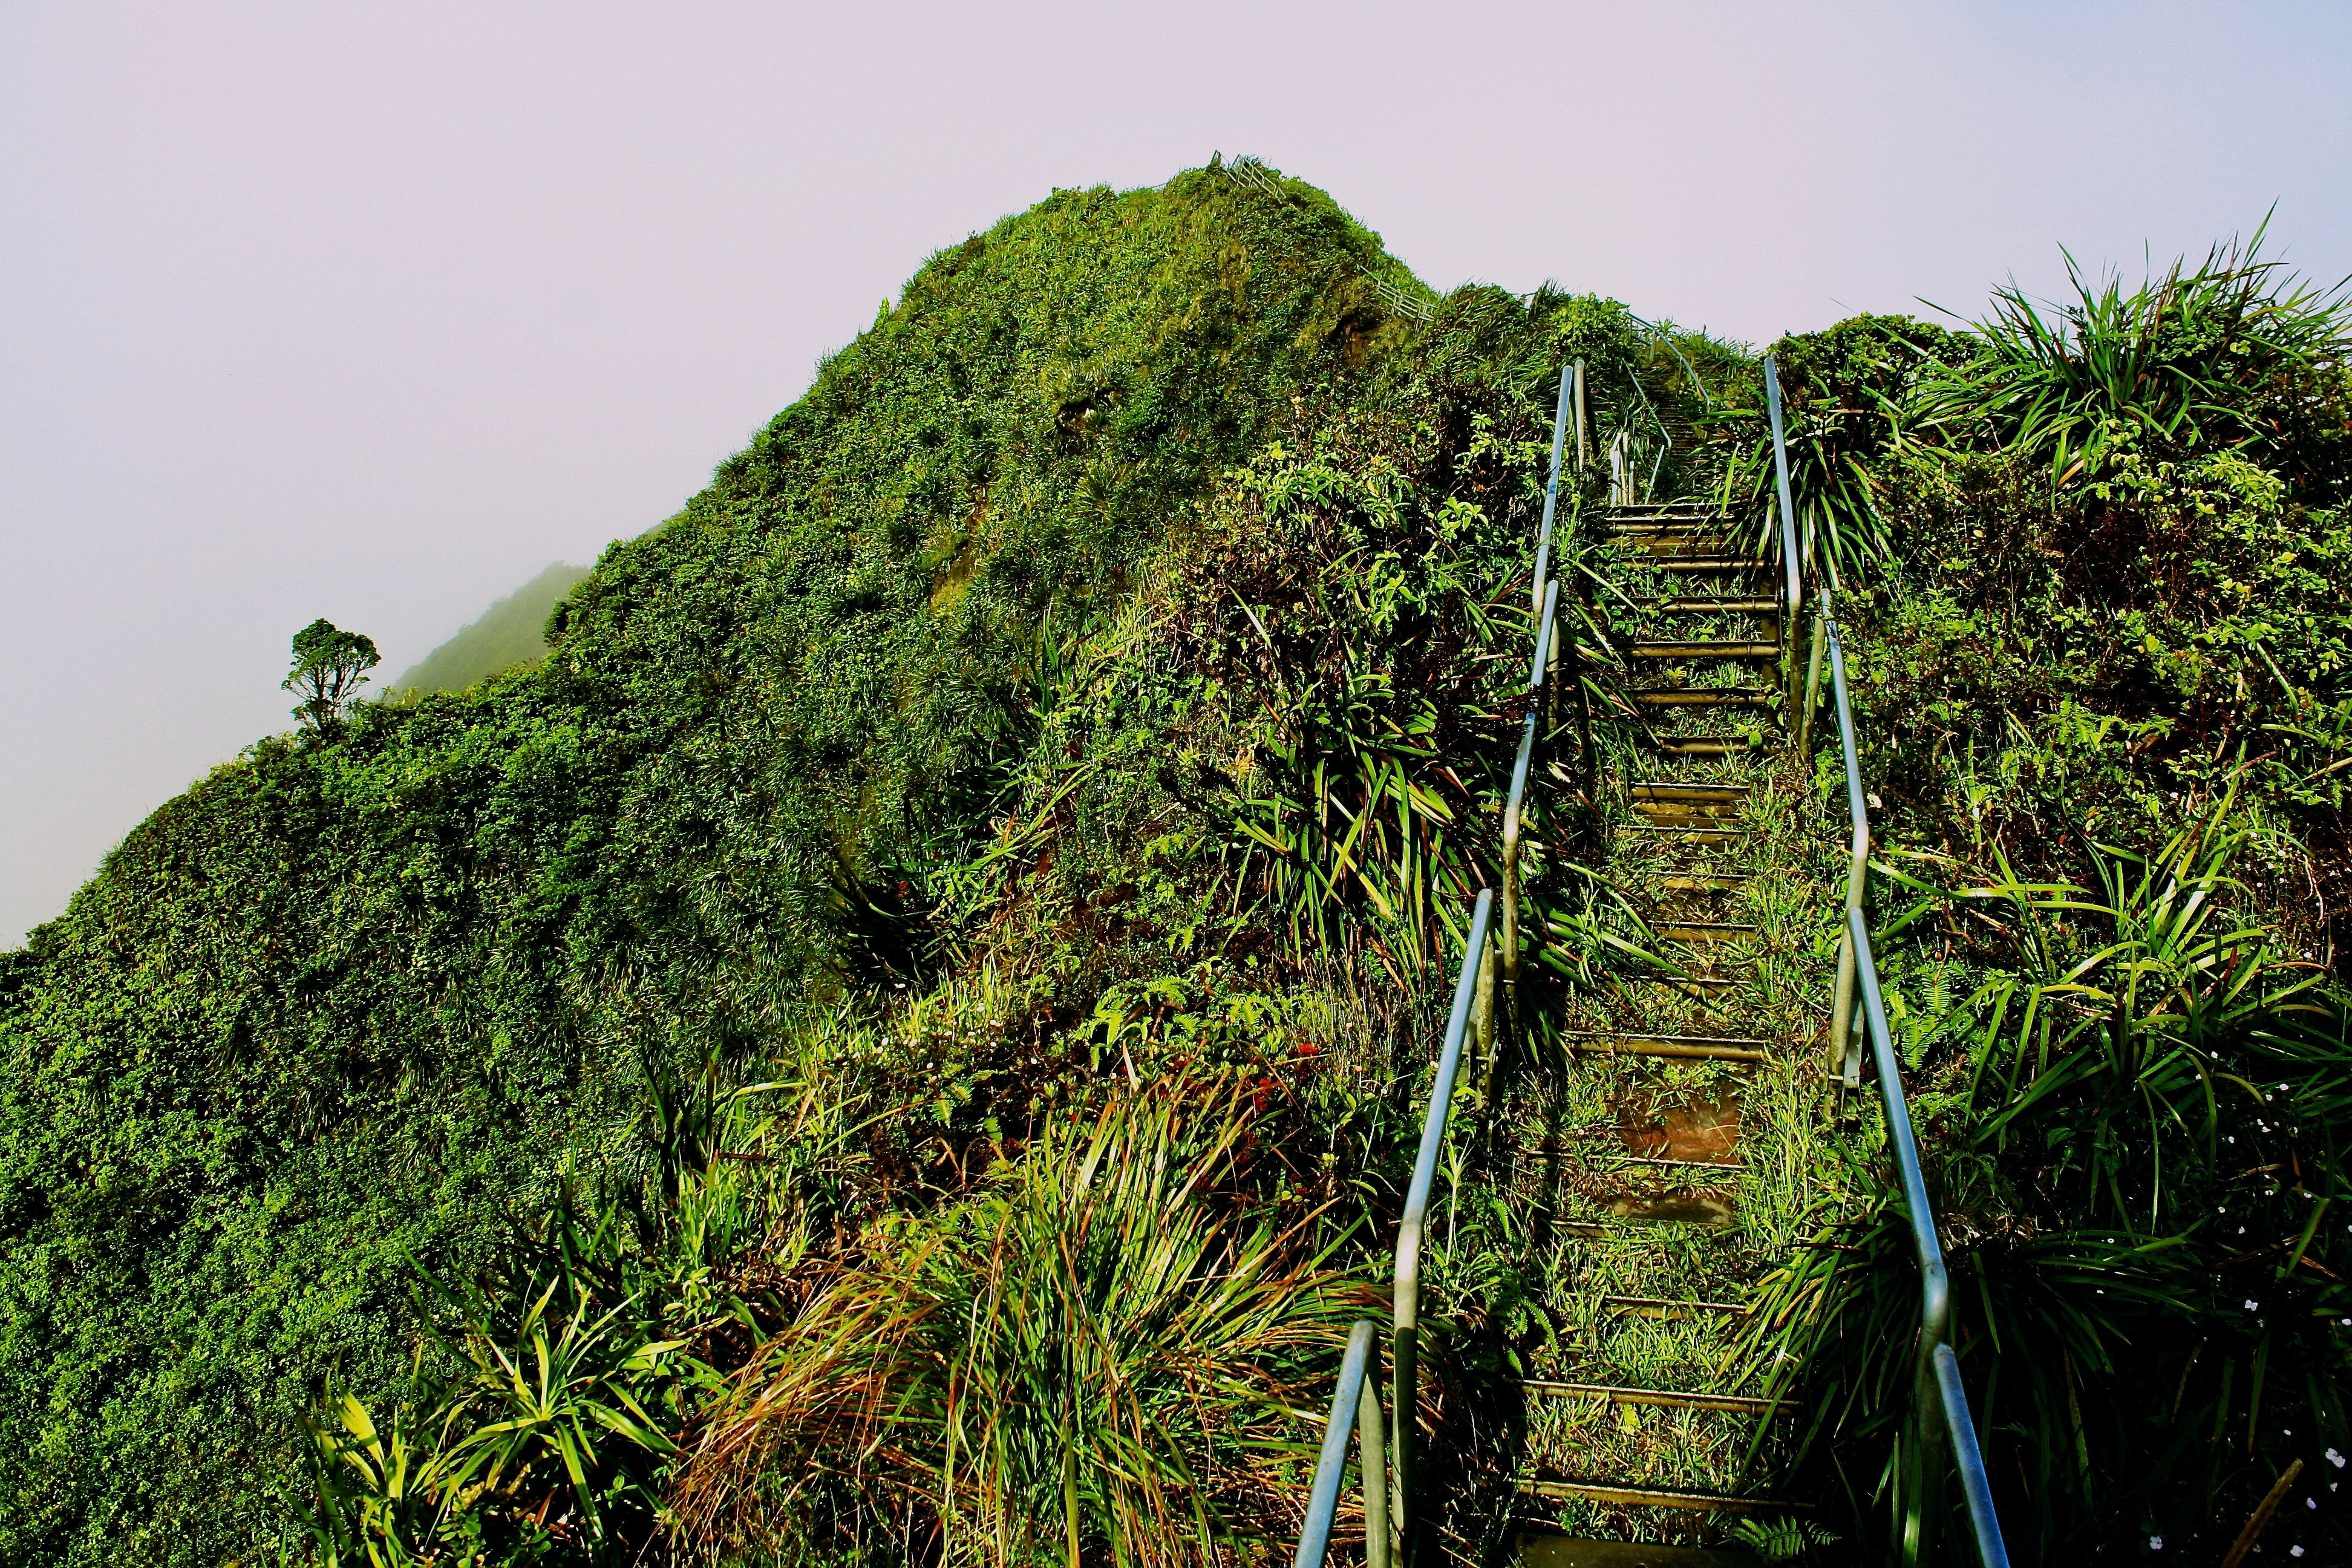 A ladder going up on a hill covered with grass